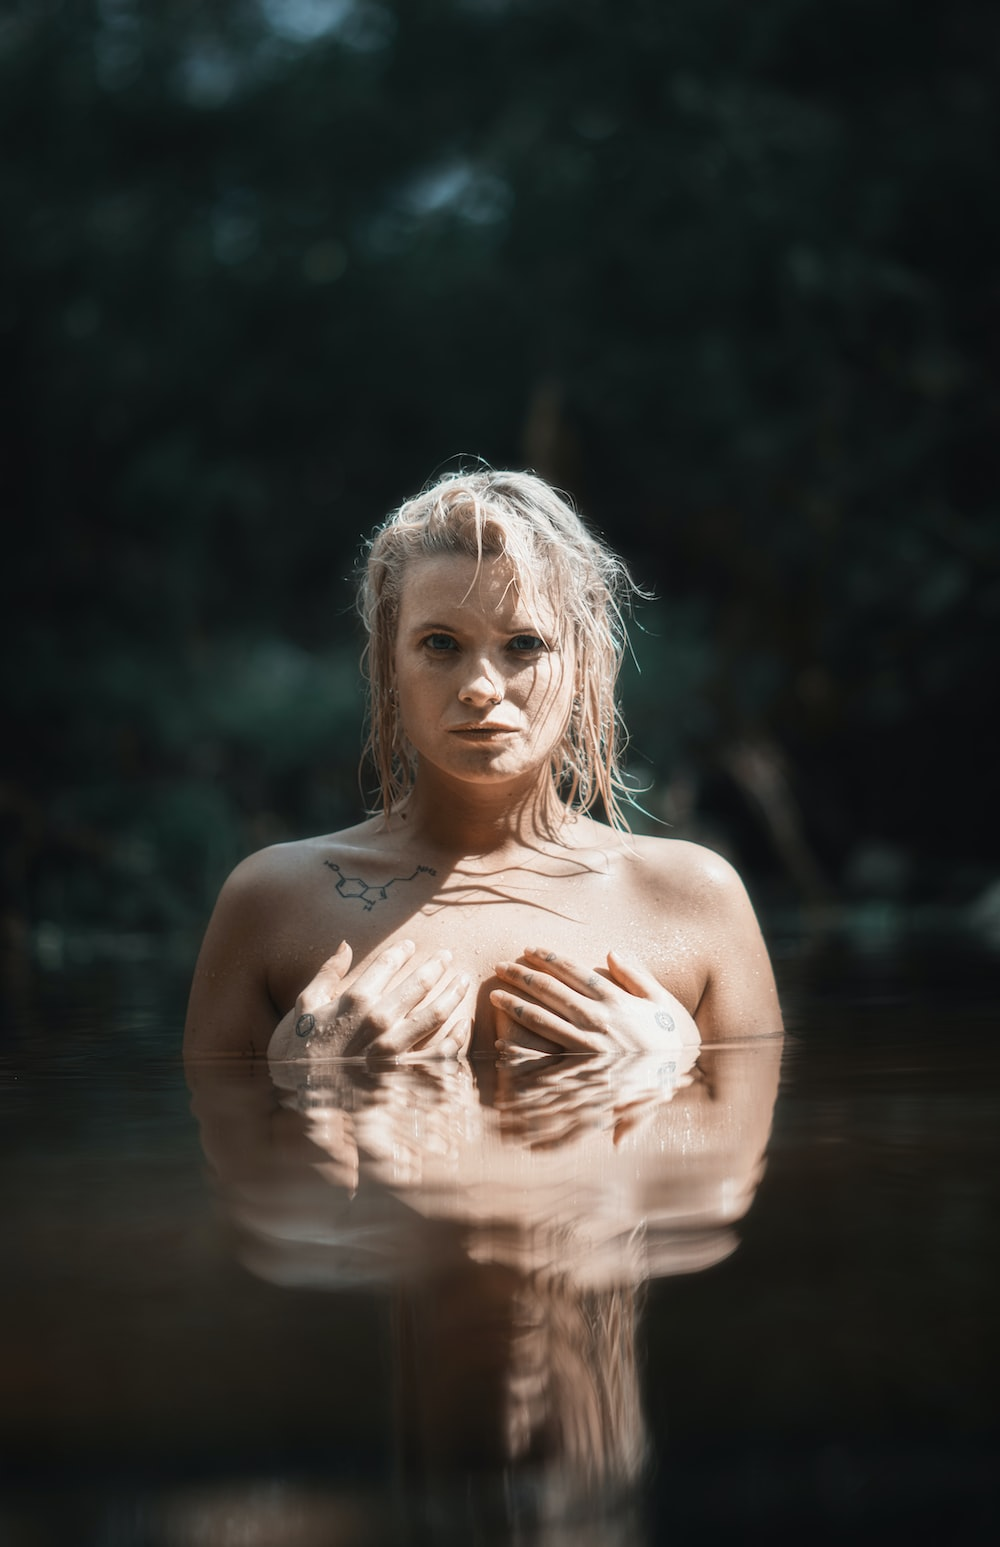 topless woman in water during daytime